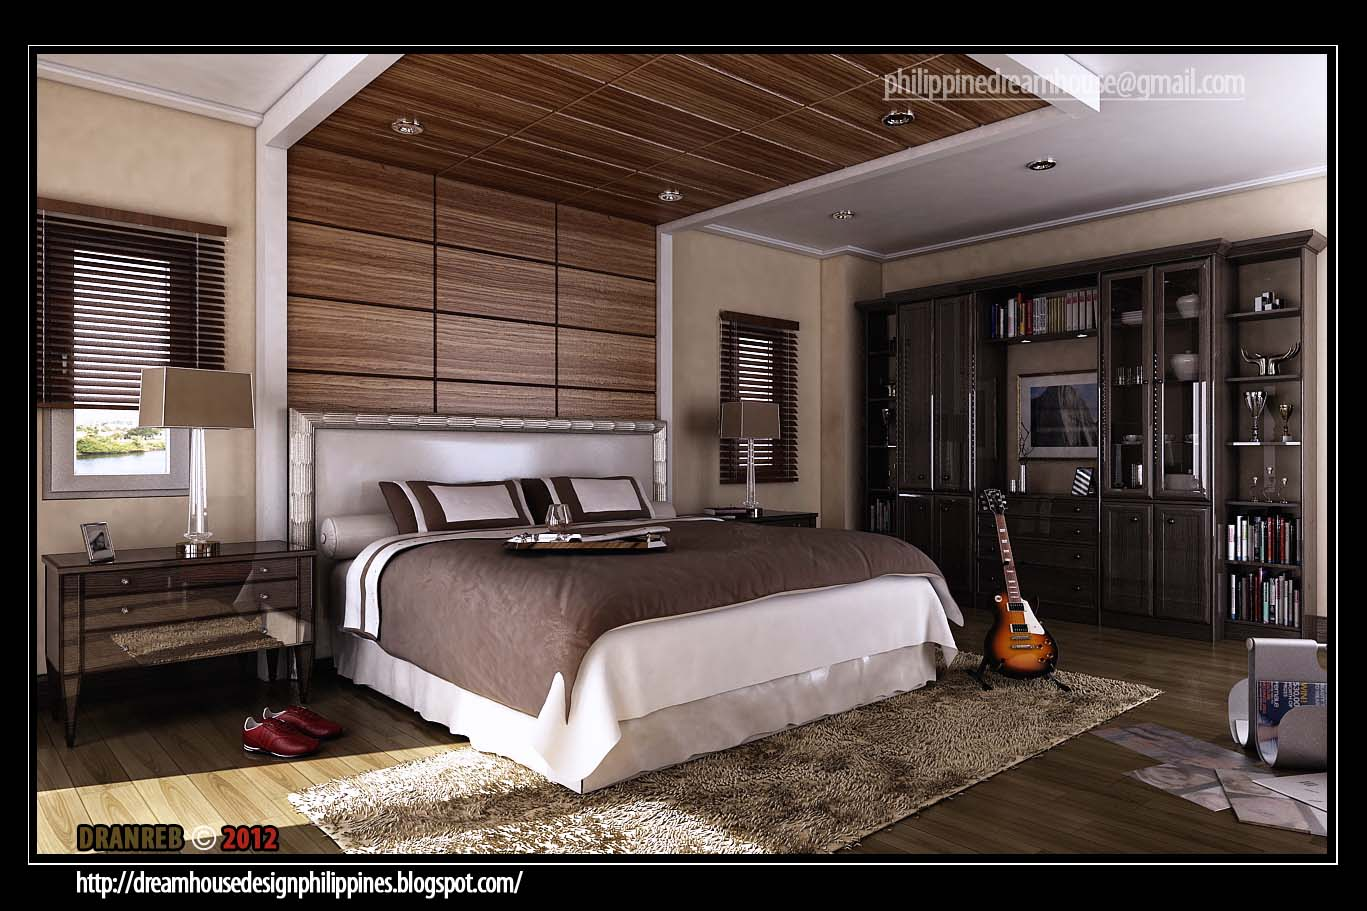 philippine dream house design the master 39 s bedroom. Black Bedroom Furniture Sets. Home Design Ideas